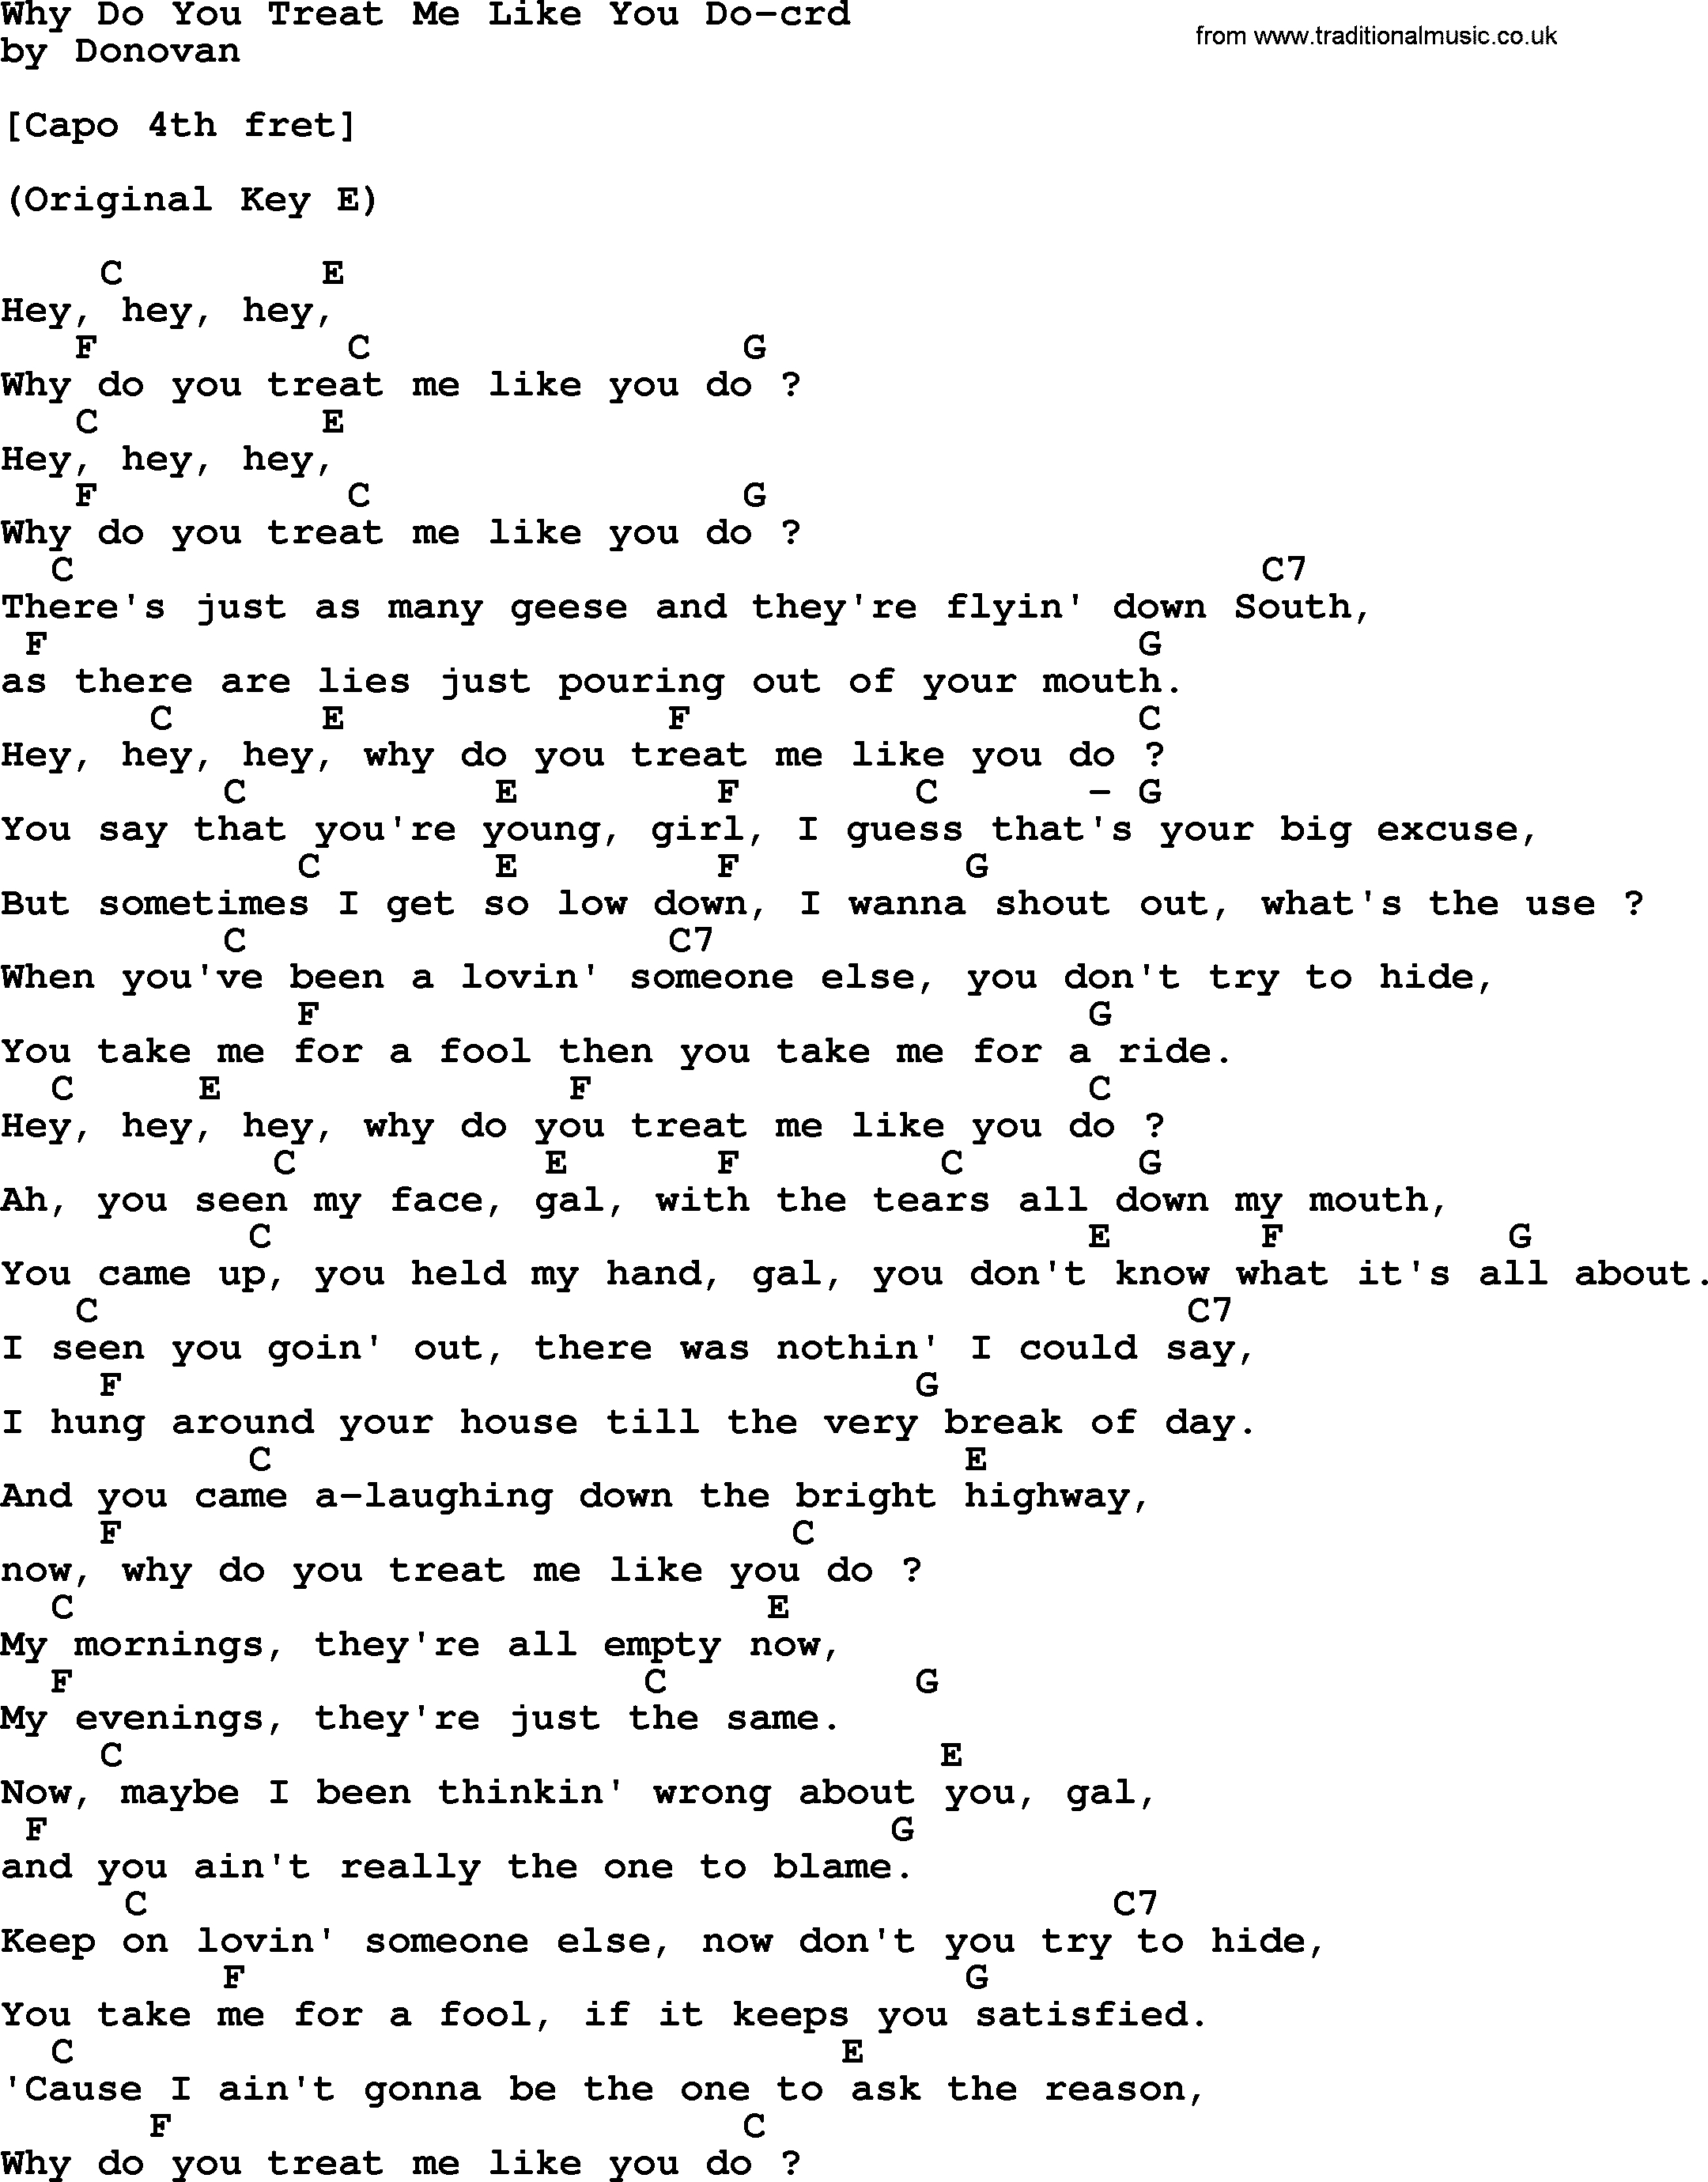 Love Me Like You Do Chords Donovan Leitch Song Why Do You Treat Me Like You Do Lyrics And Chords